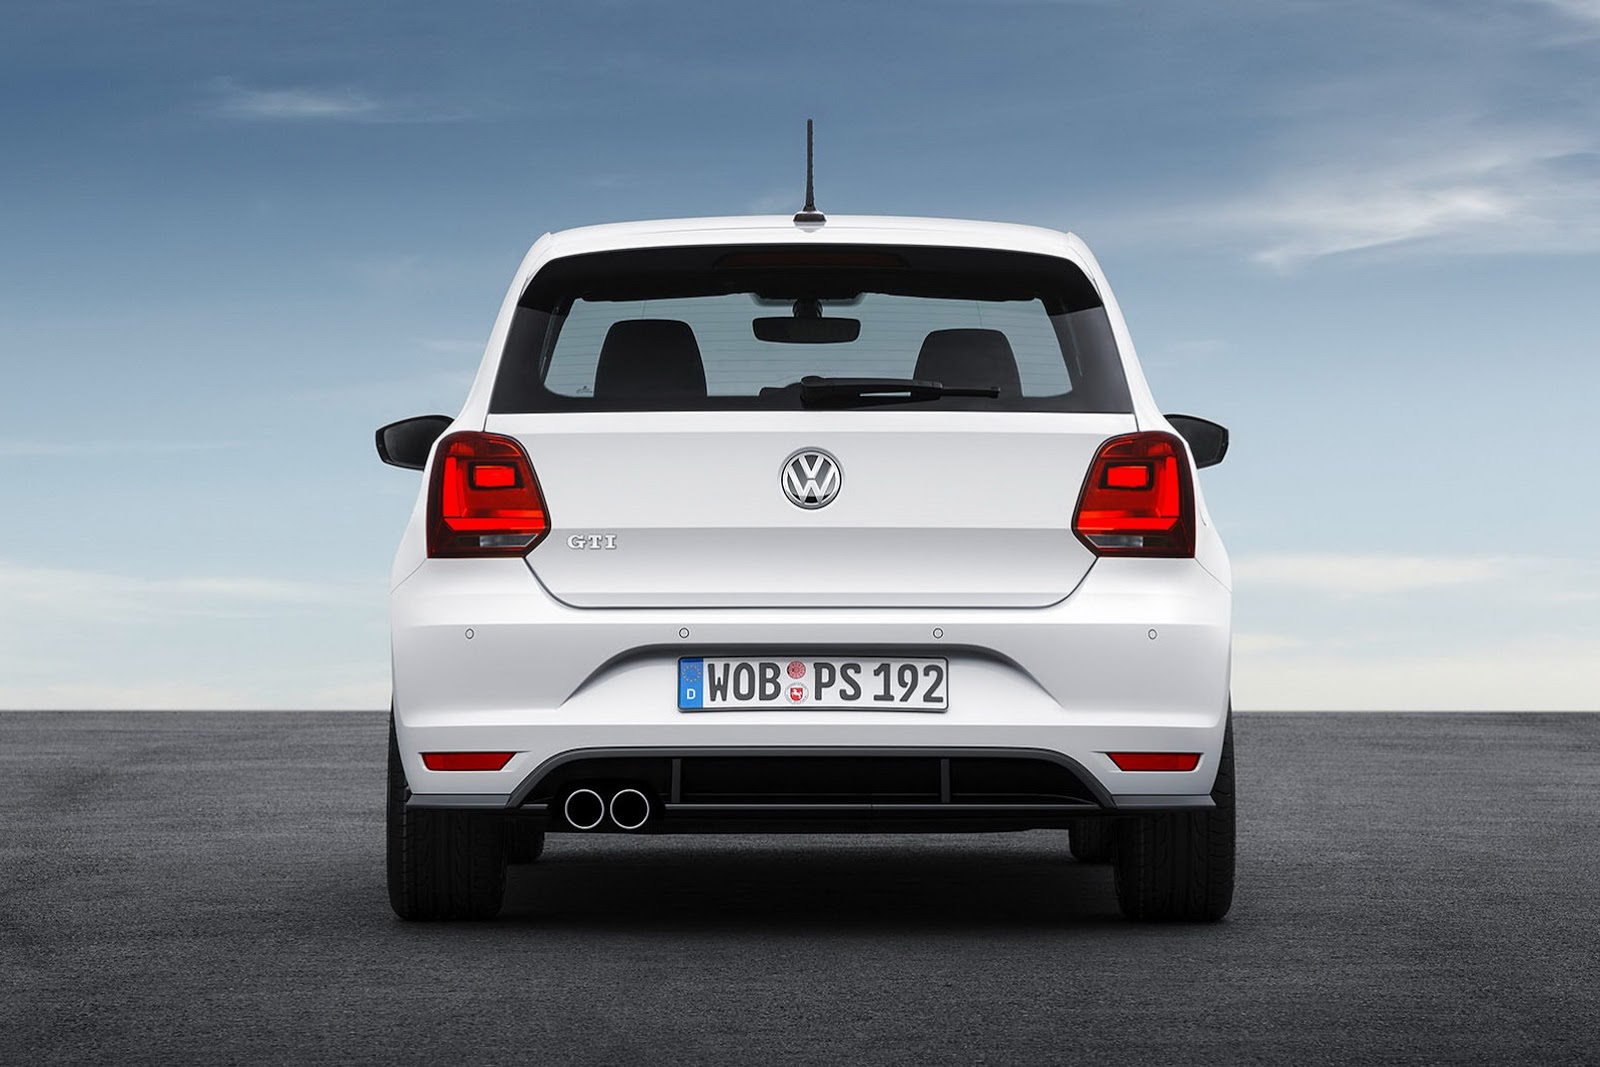 2015 vw polo gti facelift gets new 190ps 1 8l turbo and manual gearbox carscoops. Black Bedroom Furniture Sets. Home Design Ideas